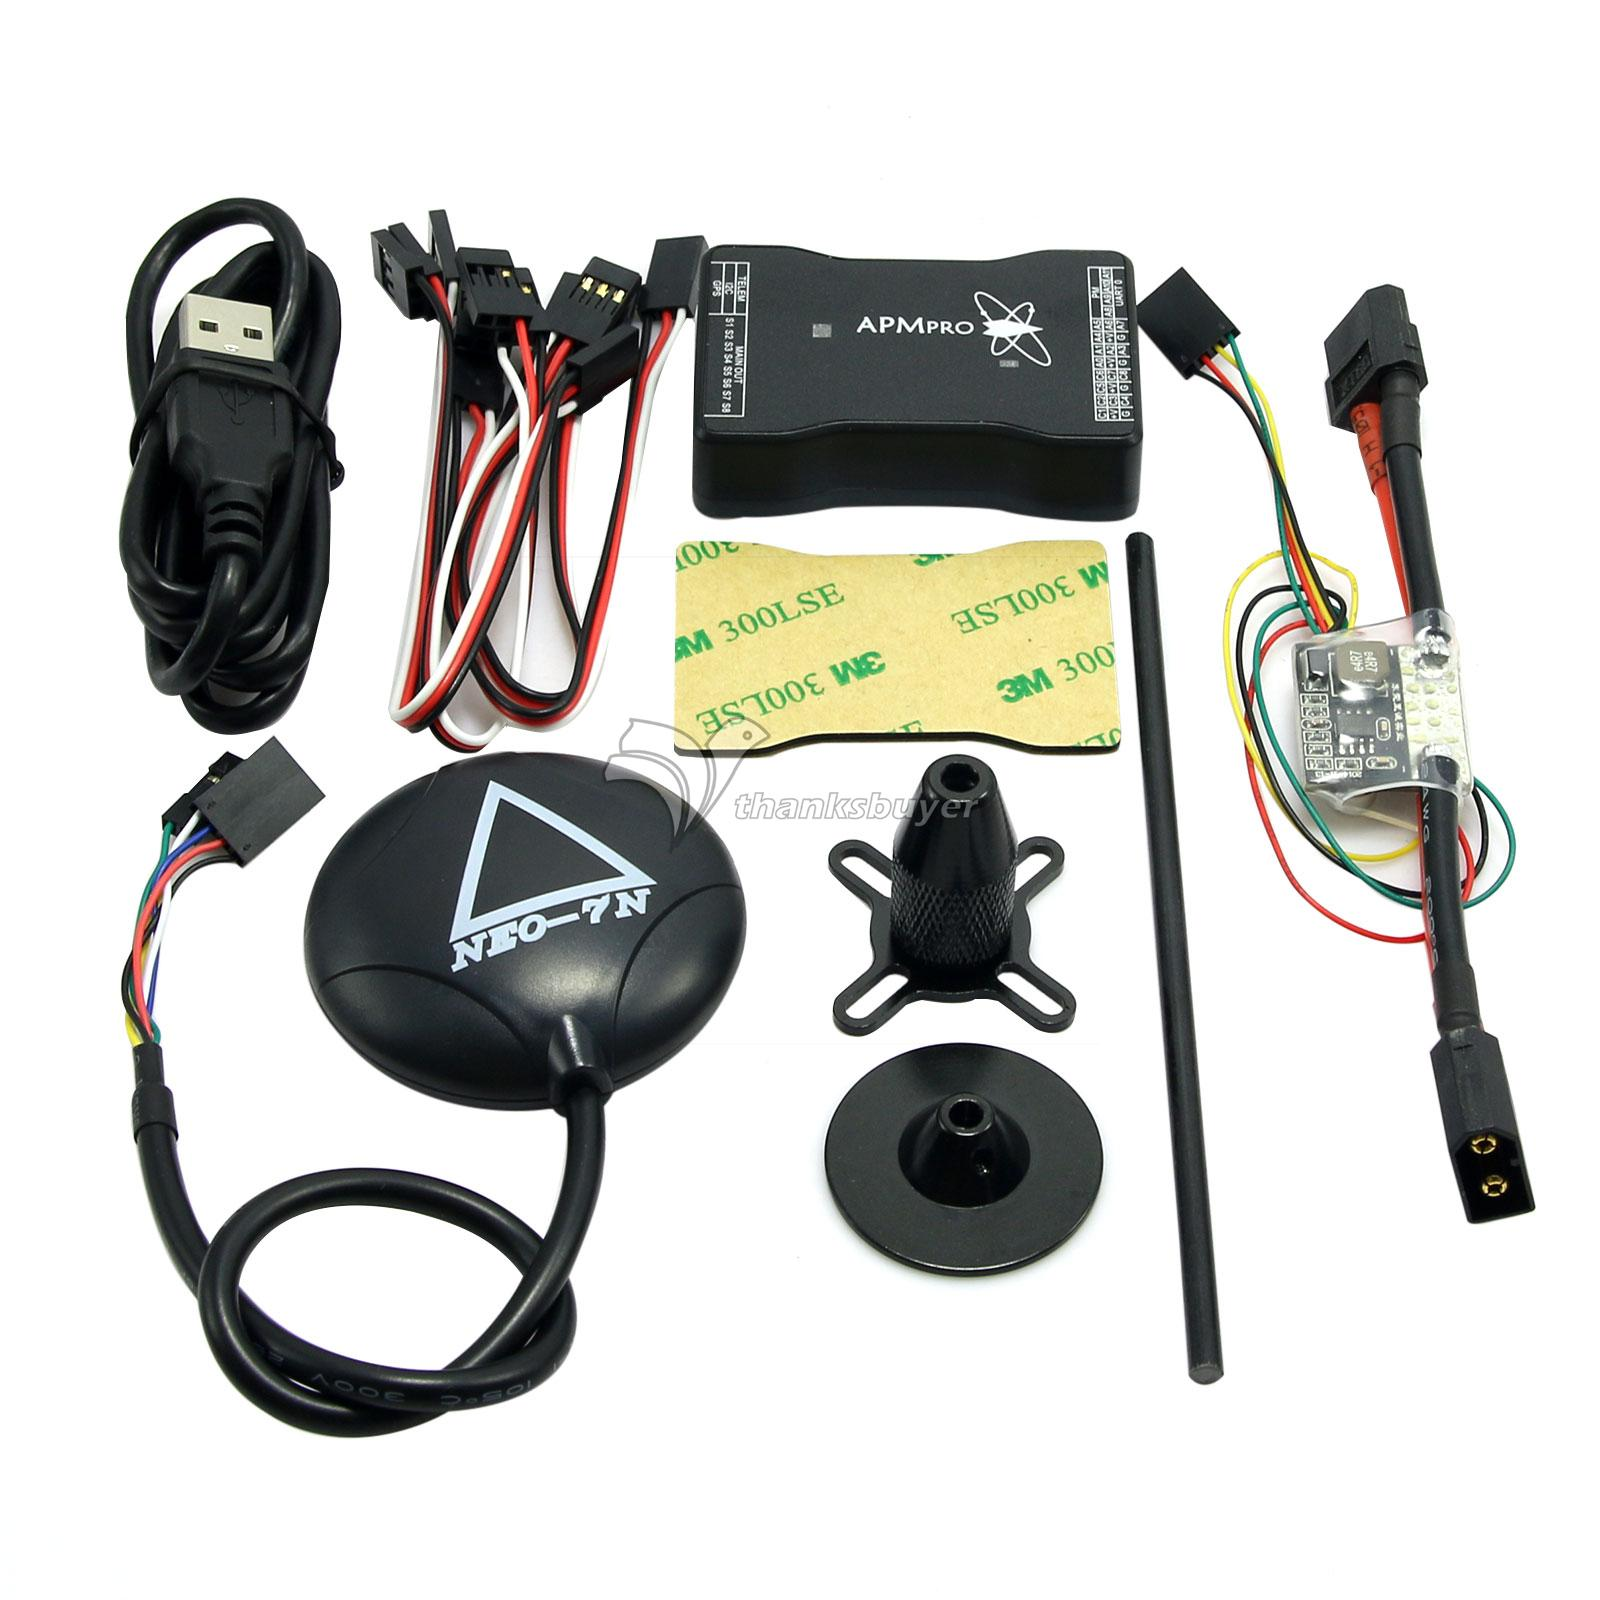 FPV Mini APM PRO Flight Control with Ulbox Neo-7N GPS & Power Module mini pro